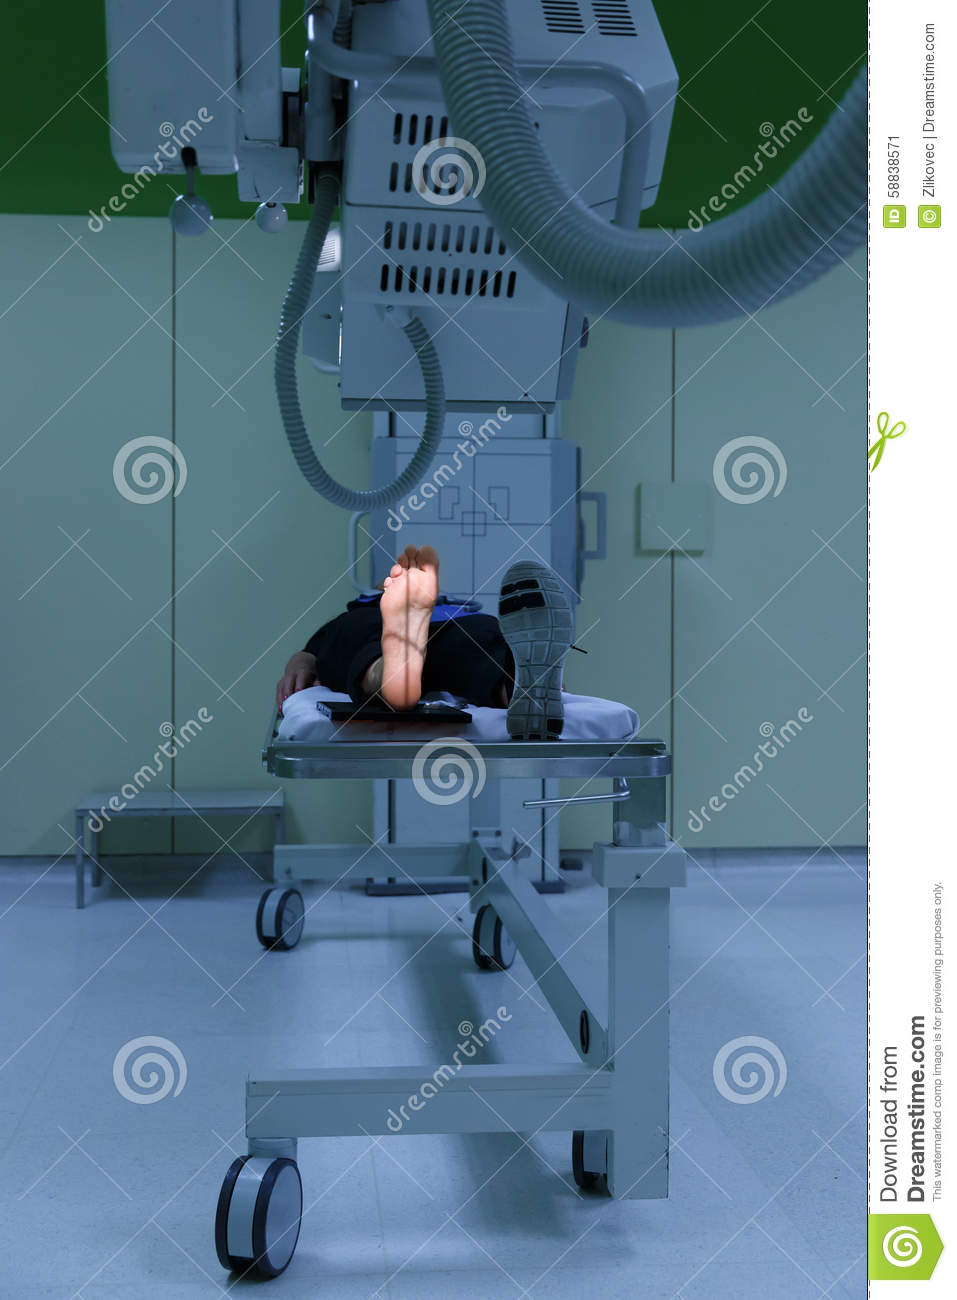 Hospital Procedure Room: X-ray Picture Of A Womans Foot (sole) Being Taken Stock